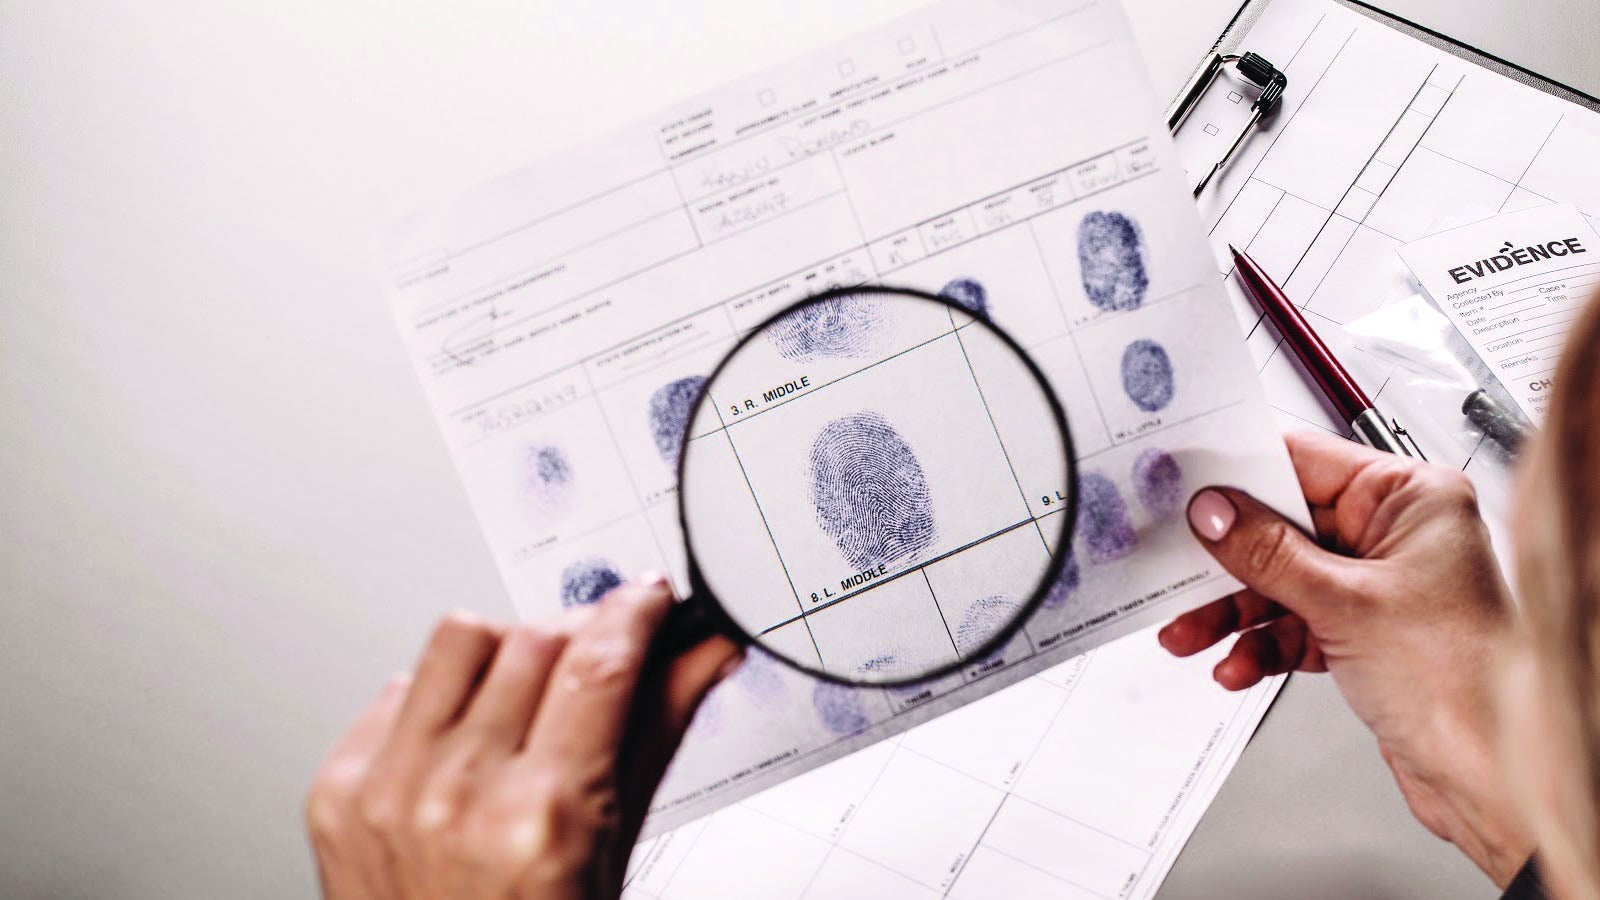 A pair of hands closely examines a set of fingerprints with a magnifying glass.